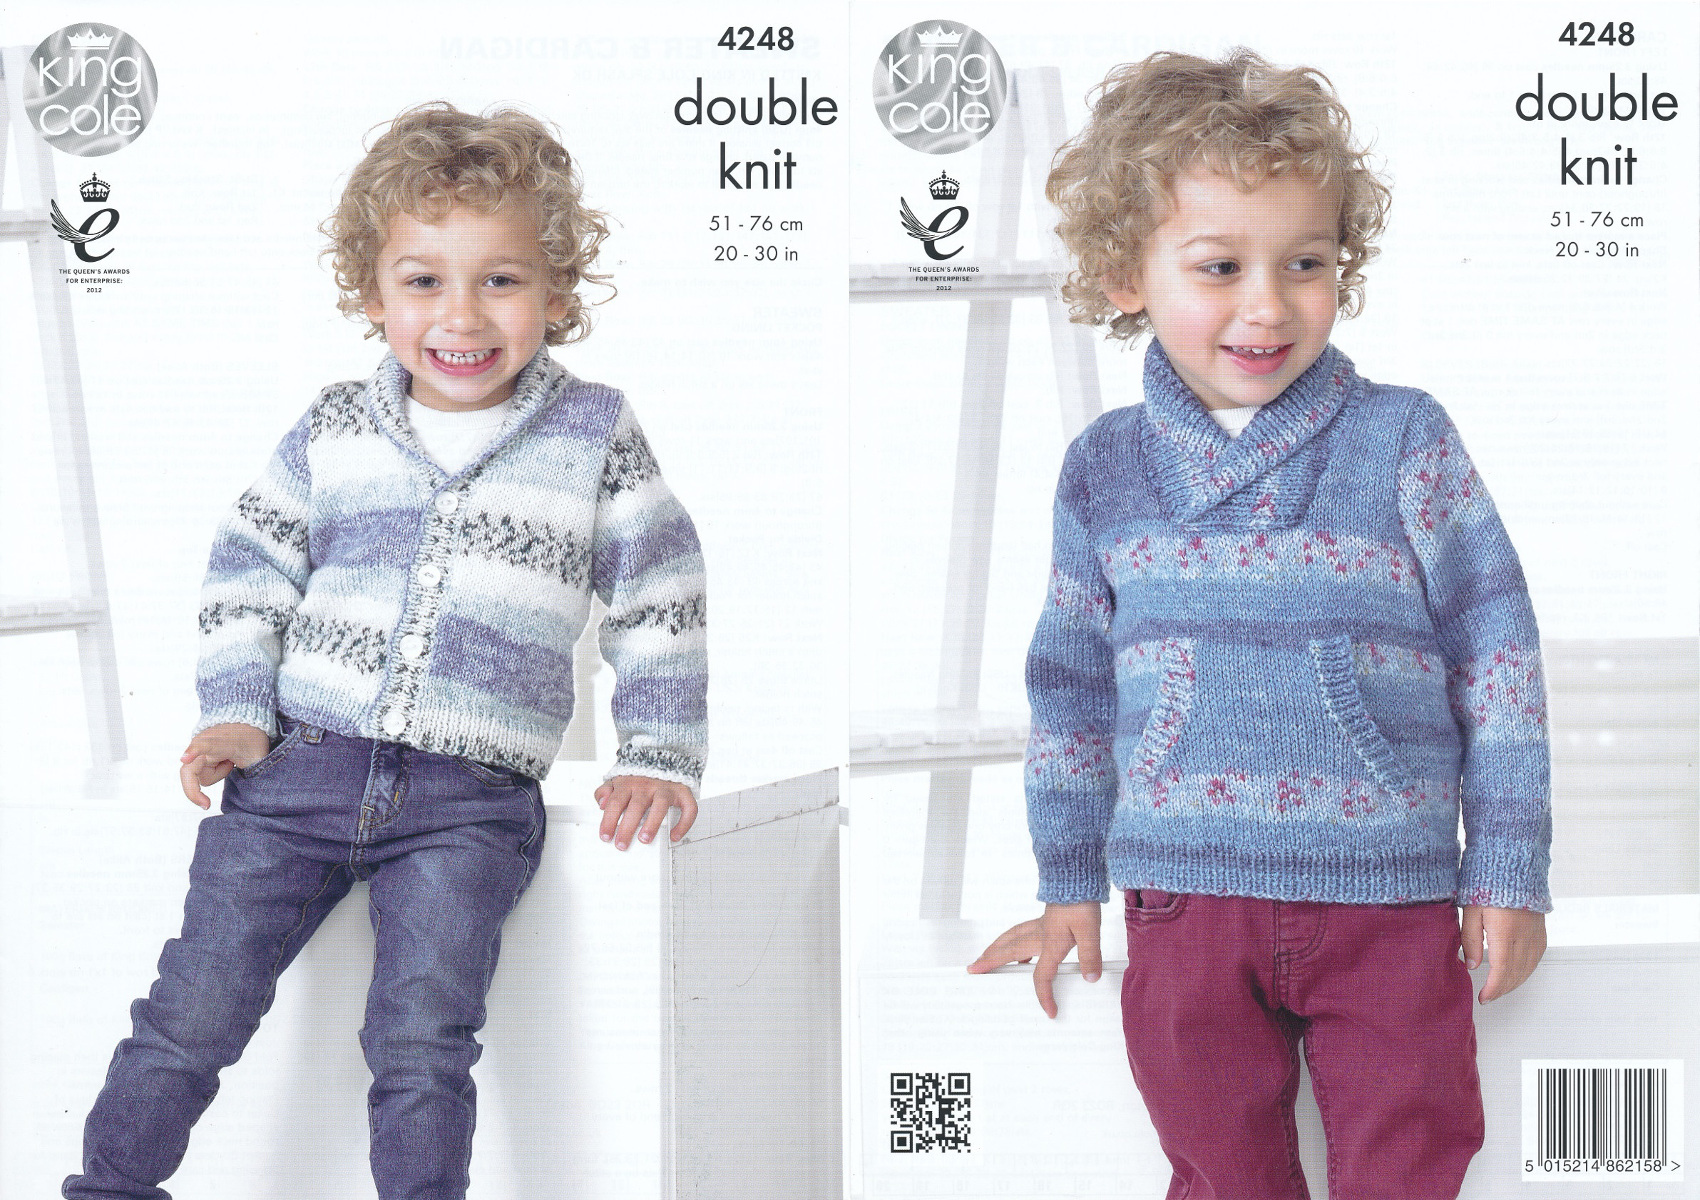 Details about King Cole Splash DK Double Knitting Pattern Childrens Boys  Cardigan Sweater 4248